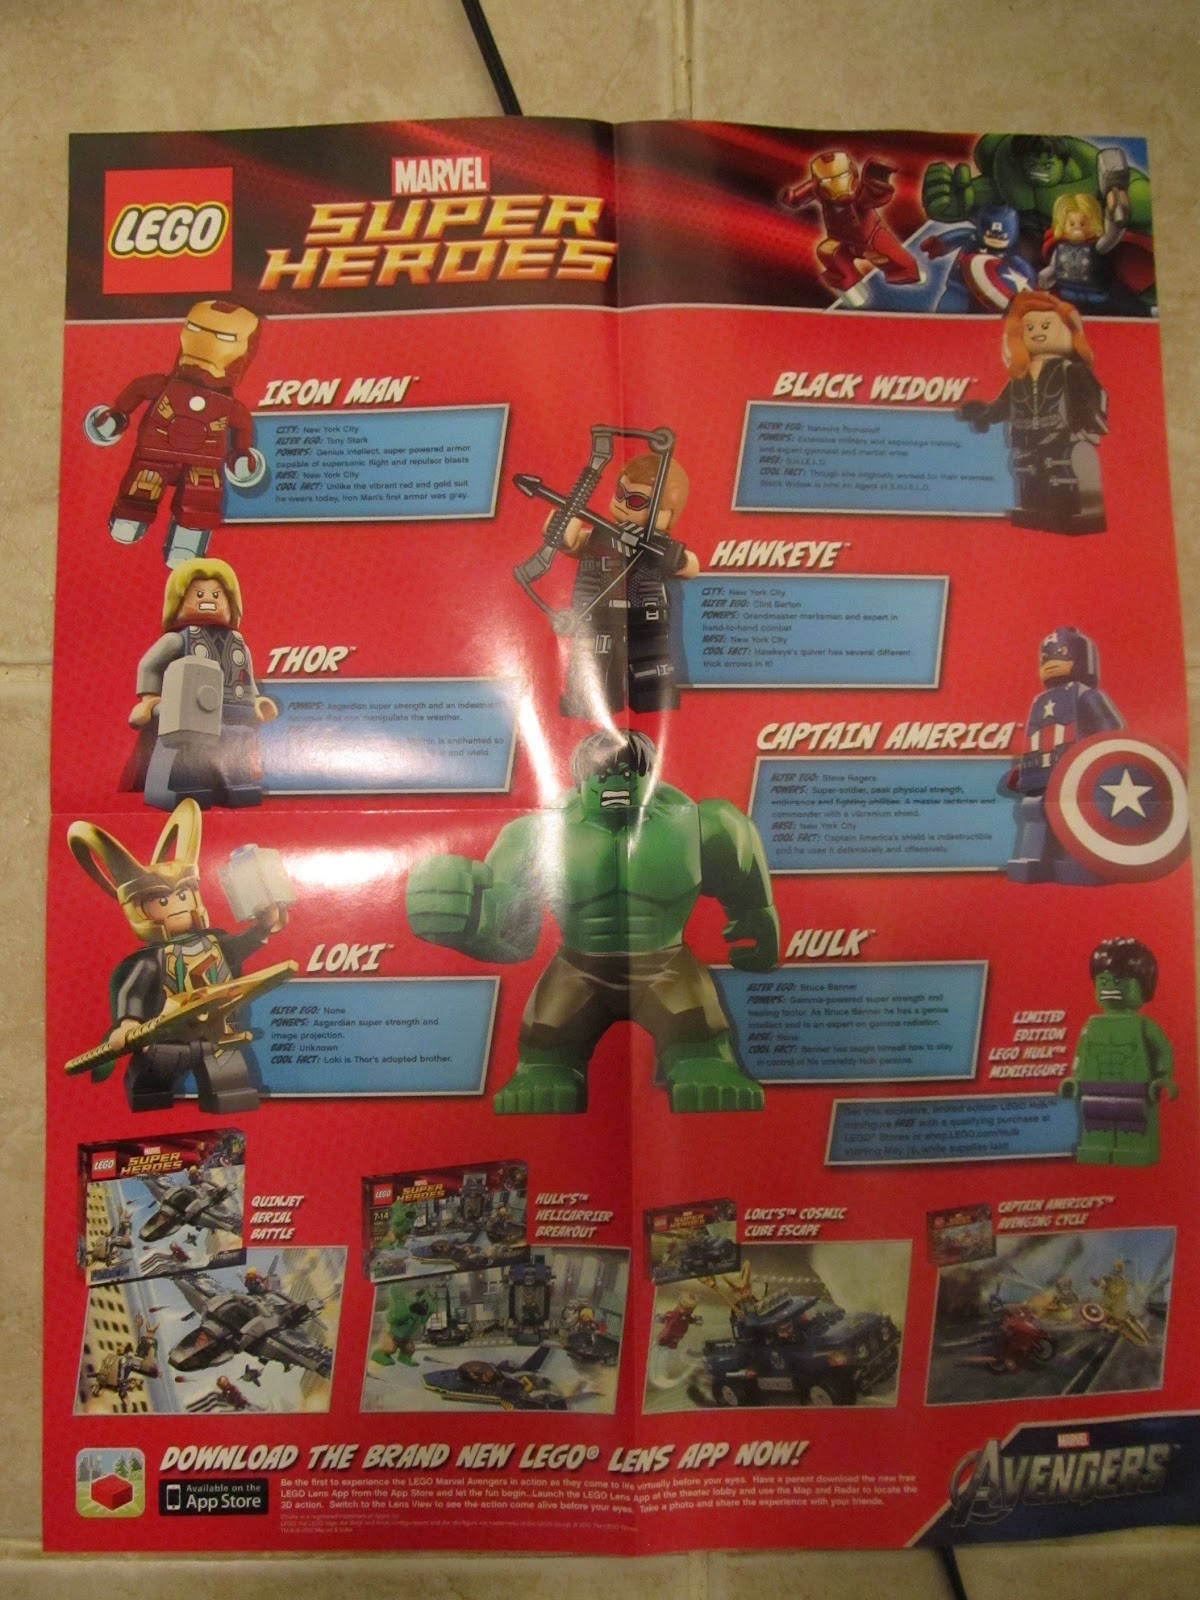 Lego avengers mini movie poster marvel super heroes thor hulk iron man